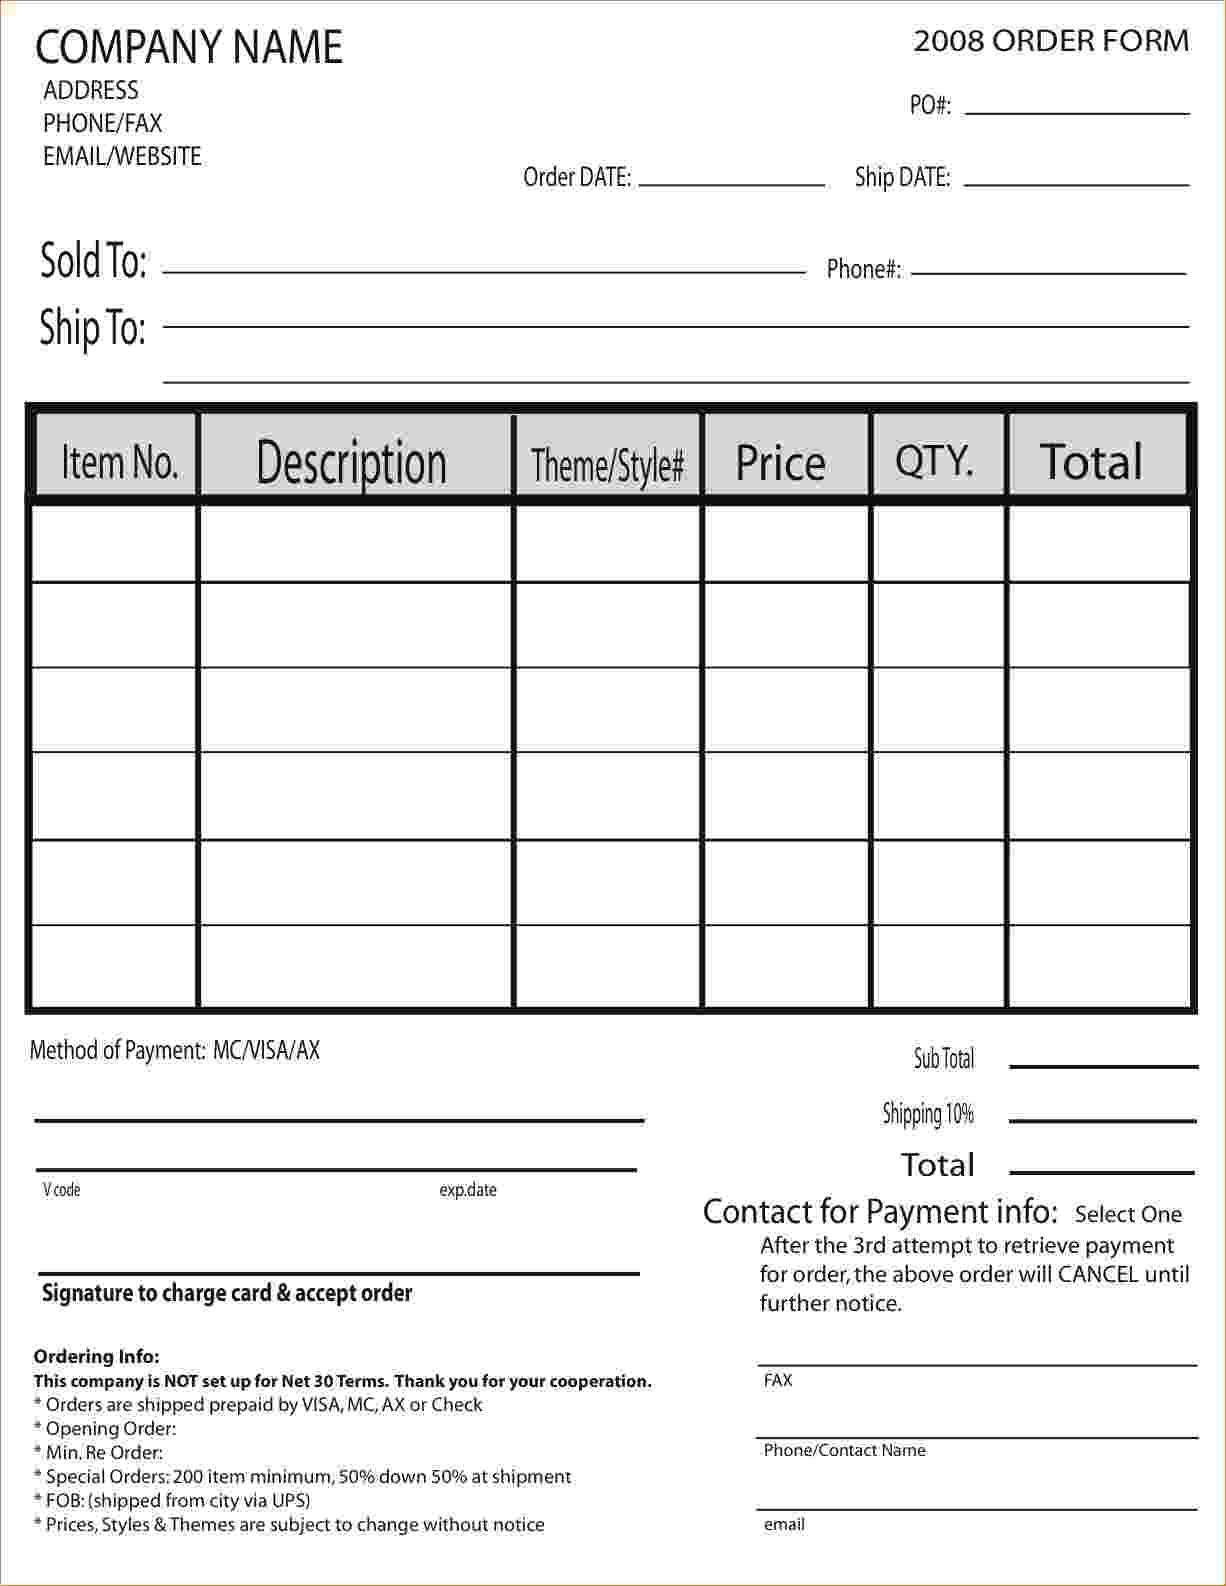 sample of order forms   Boat.jeremyeaton.co